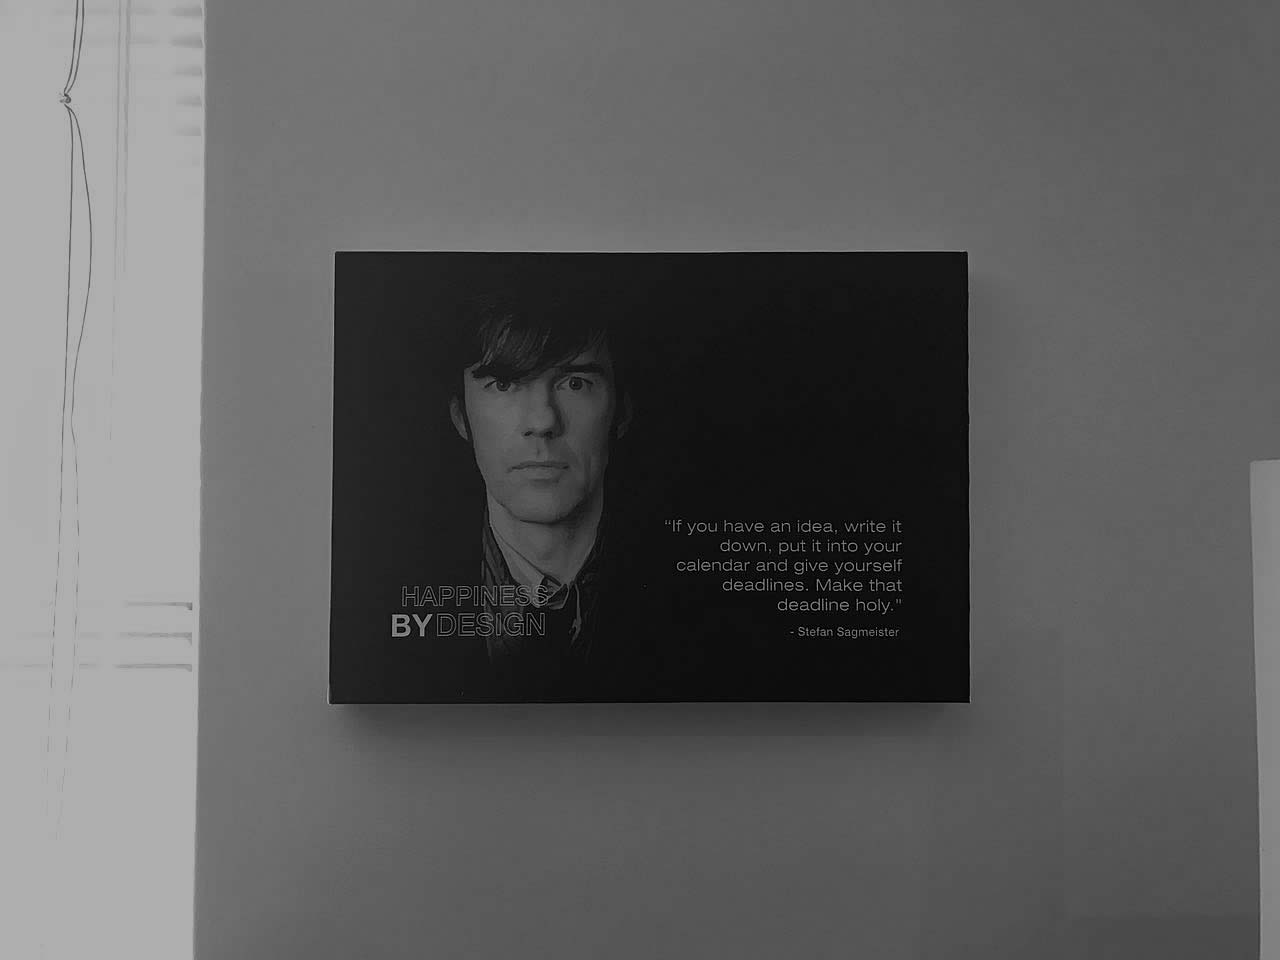 This is another artist canvas example by Vye Graphics, with an inspirational quote from Stefan Sagmeister.